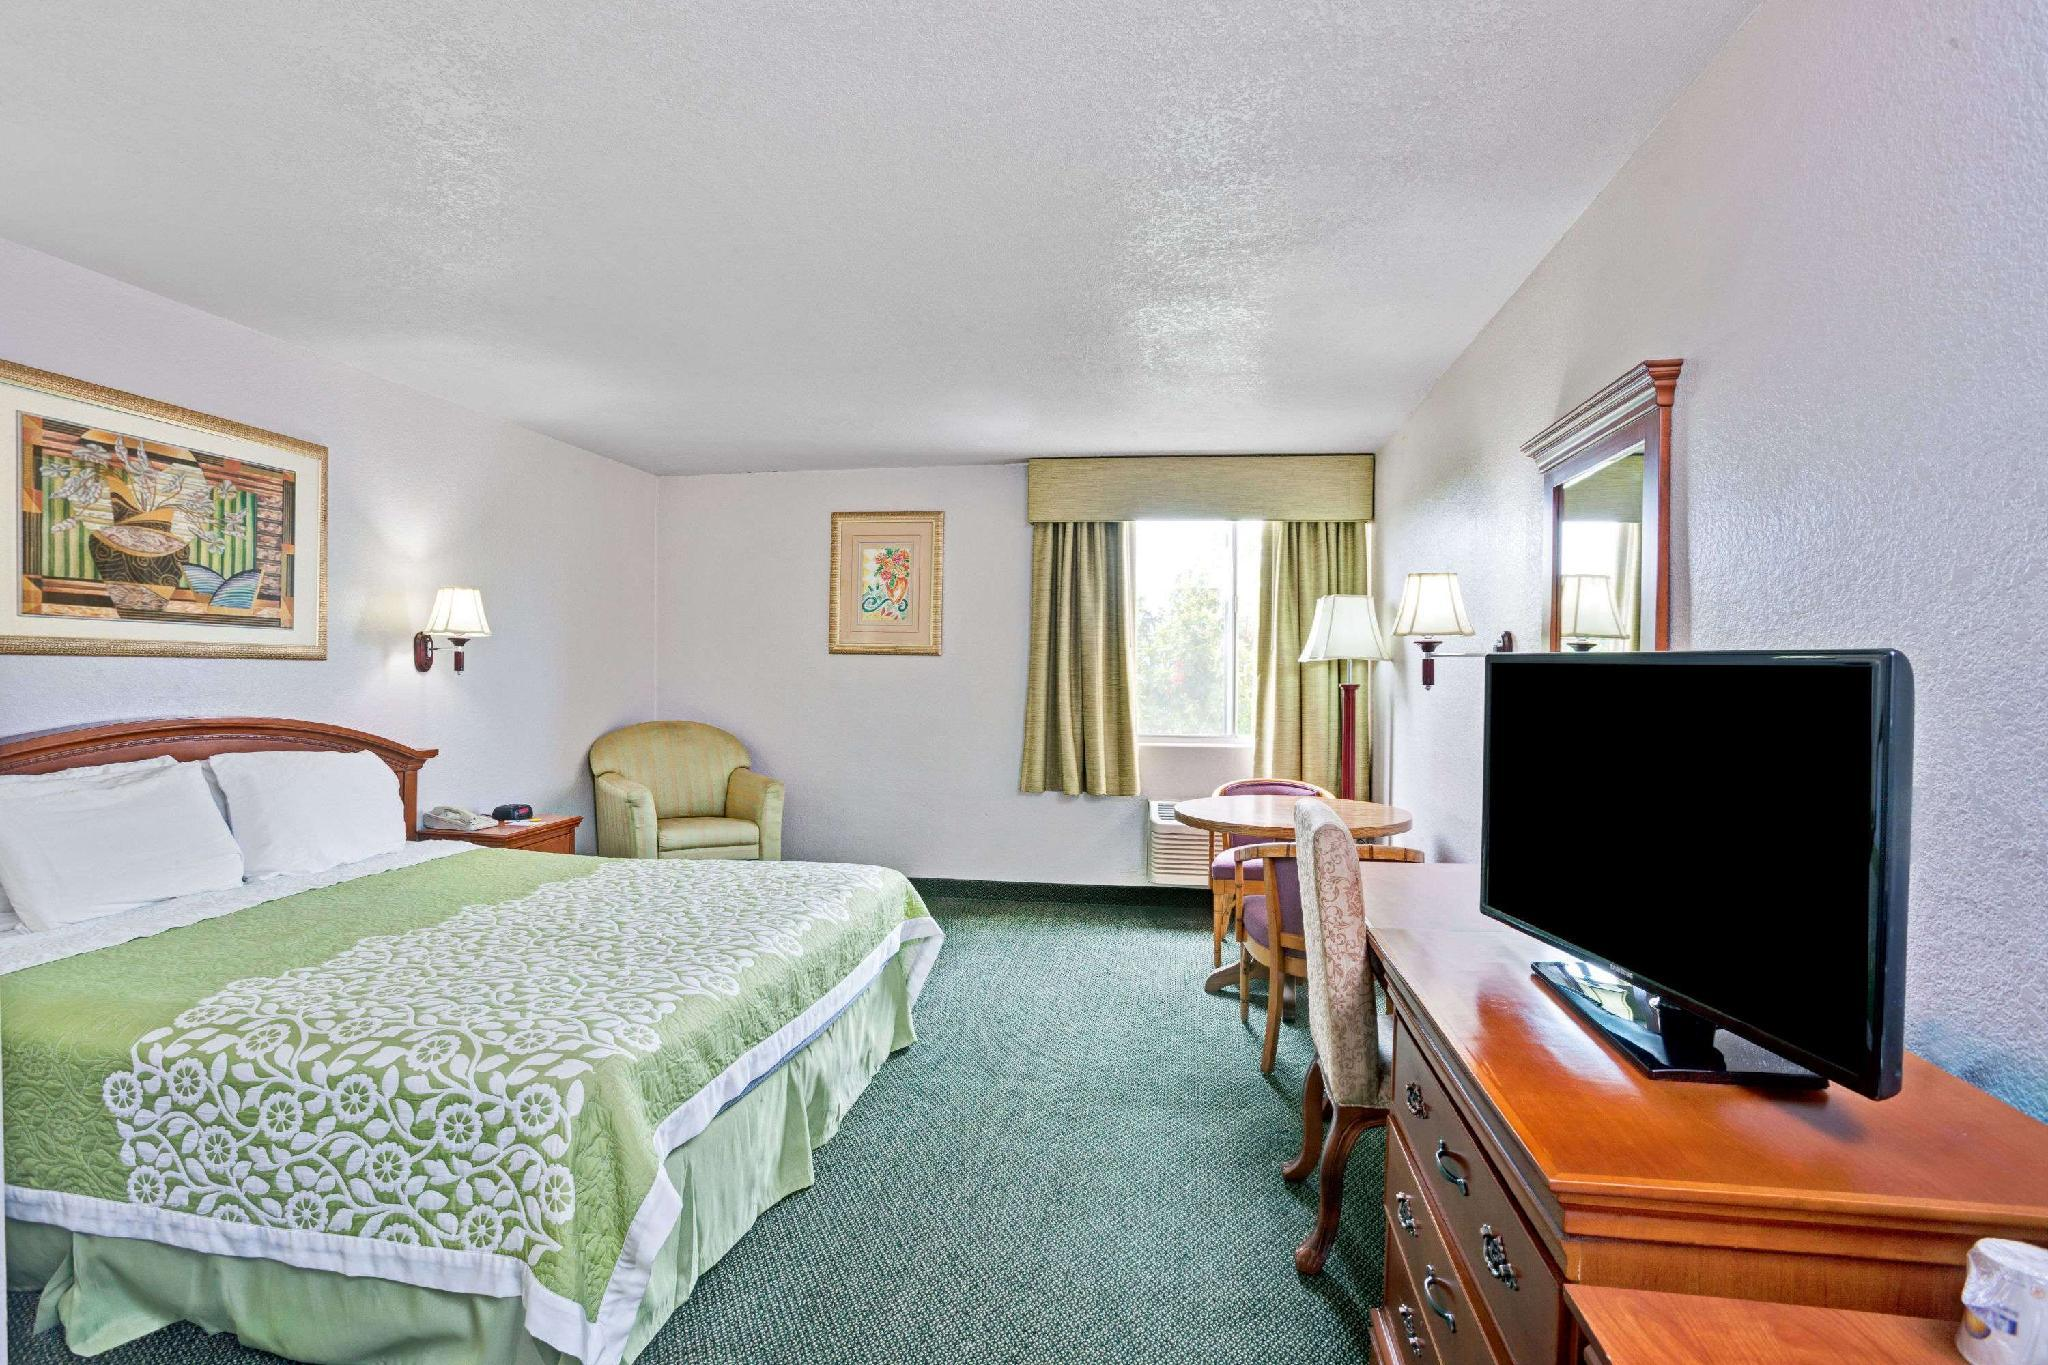 1 King Bed, Mobility Accessible Room, Smoking